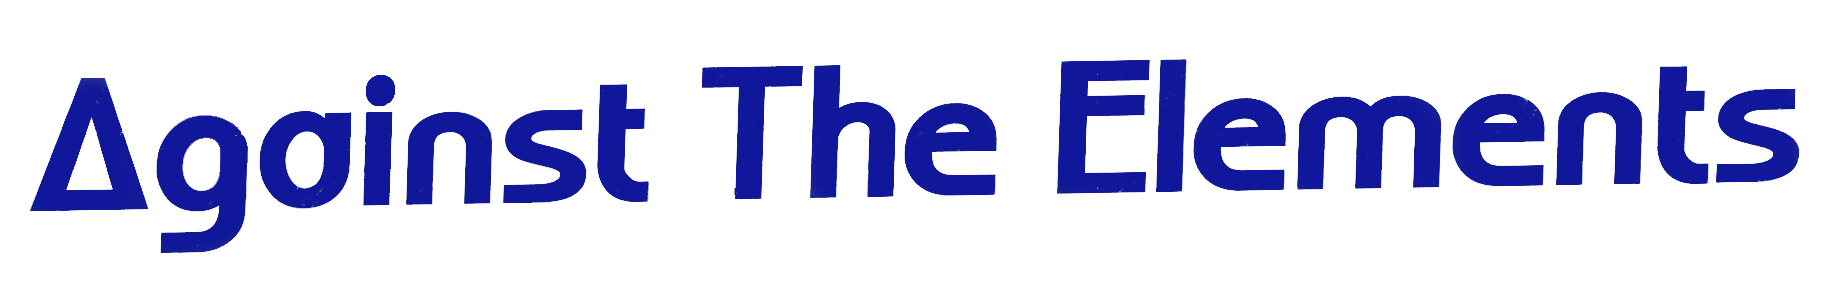 Against The Elements text logo